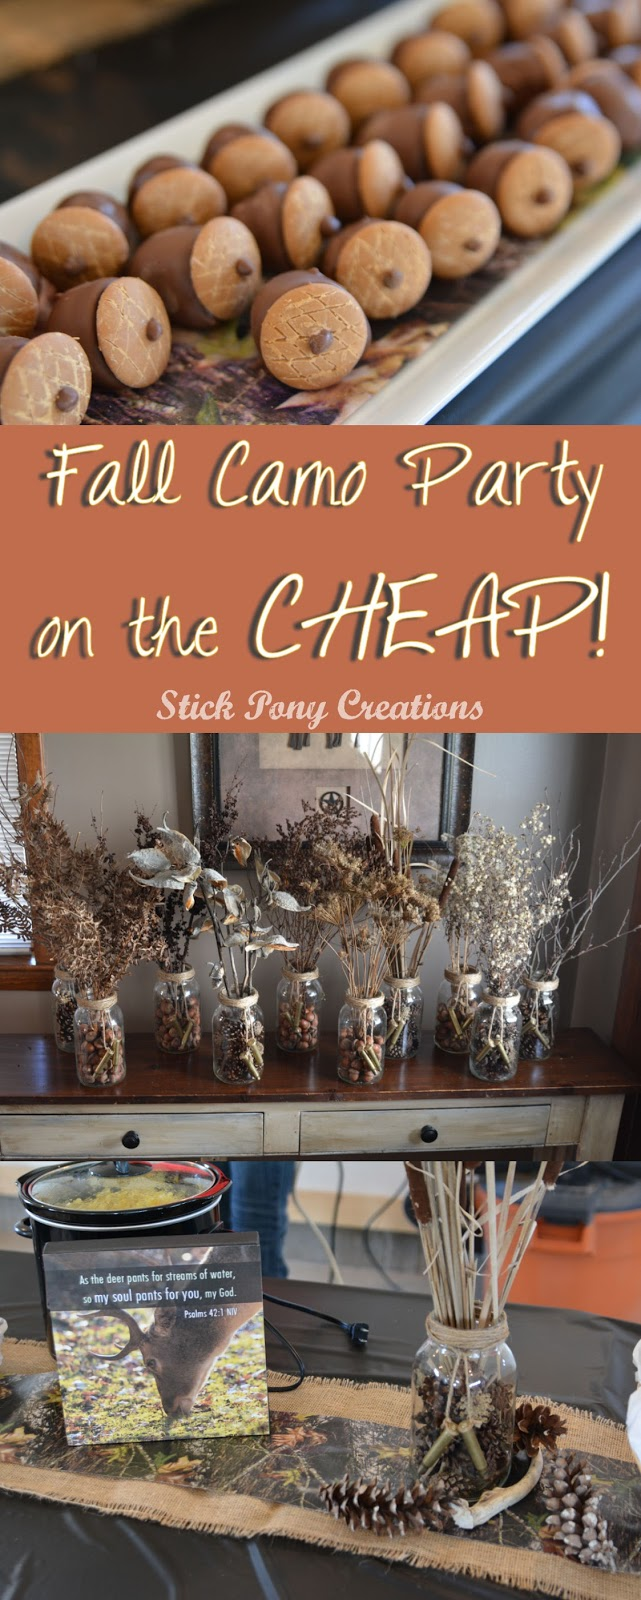 Stick Pony Creations Fall Camo Party On The Cheap